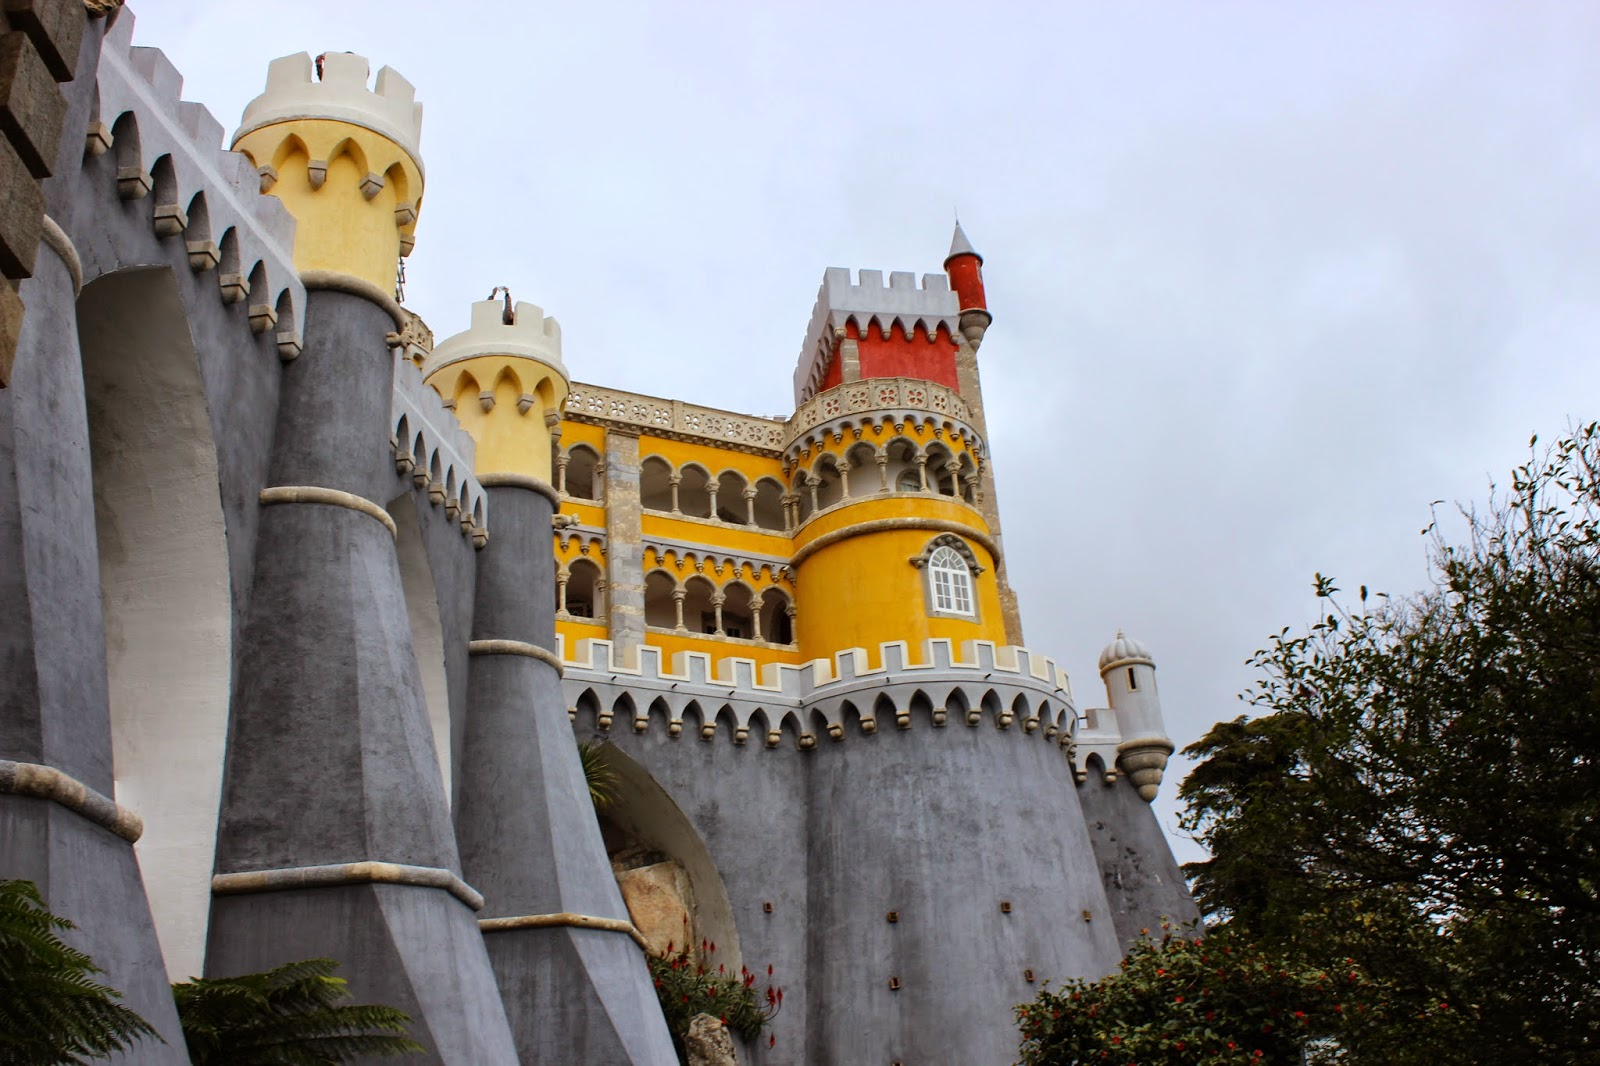 http://www.saucemagnusson.com/2015/03/the-enchanting-pena-palace-in-sintra.html